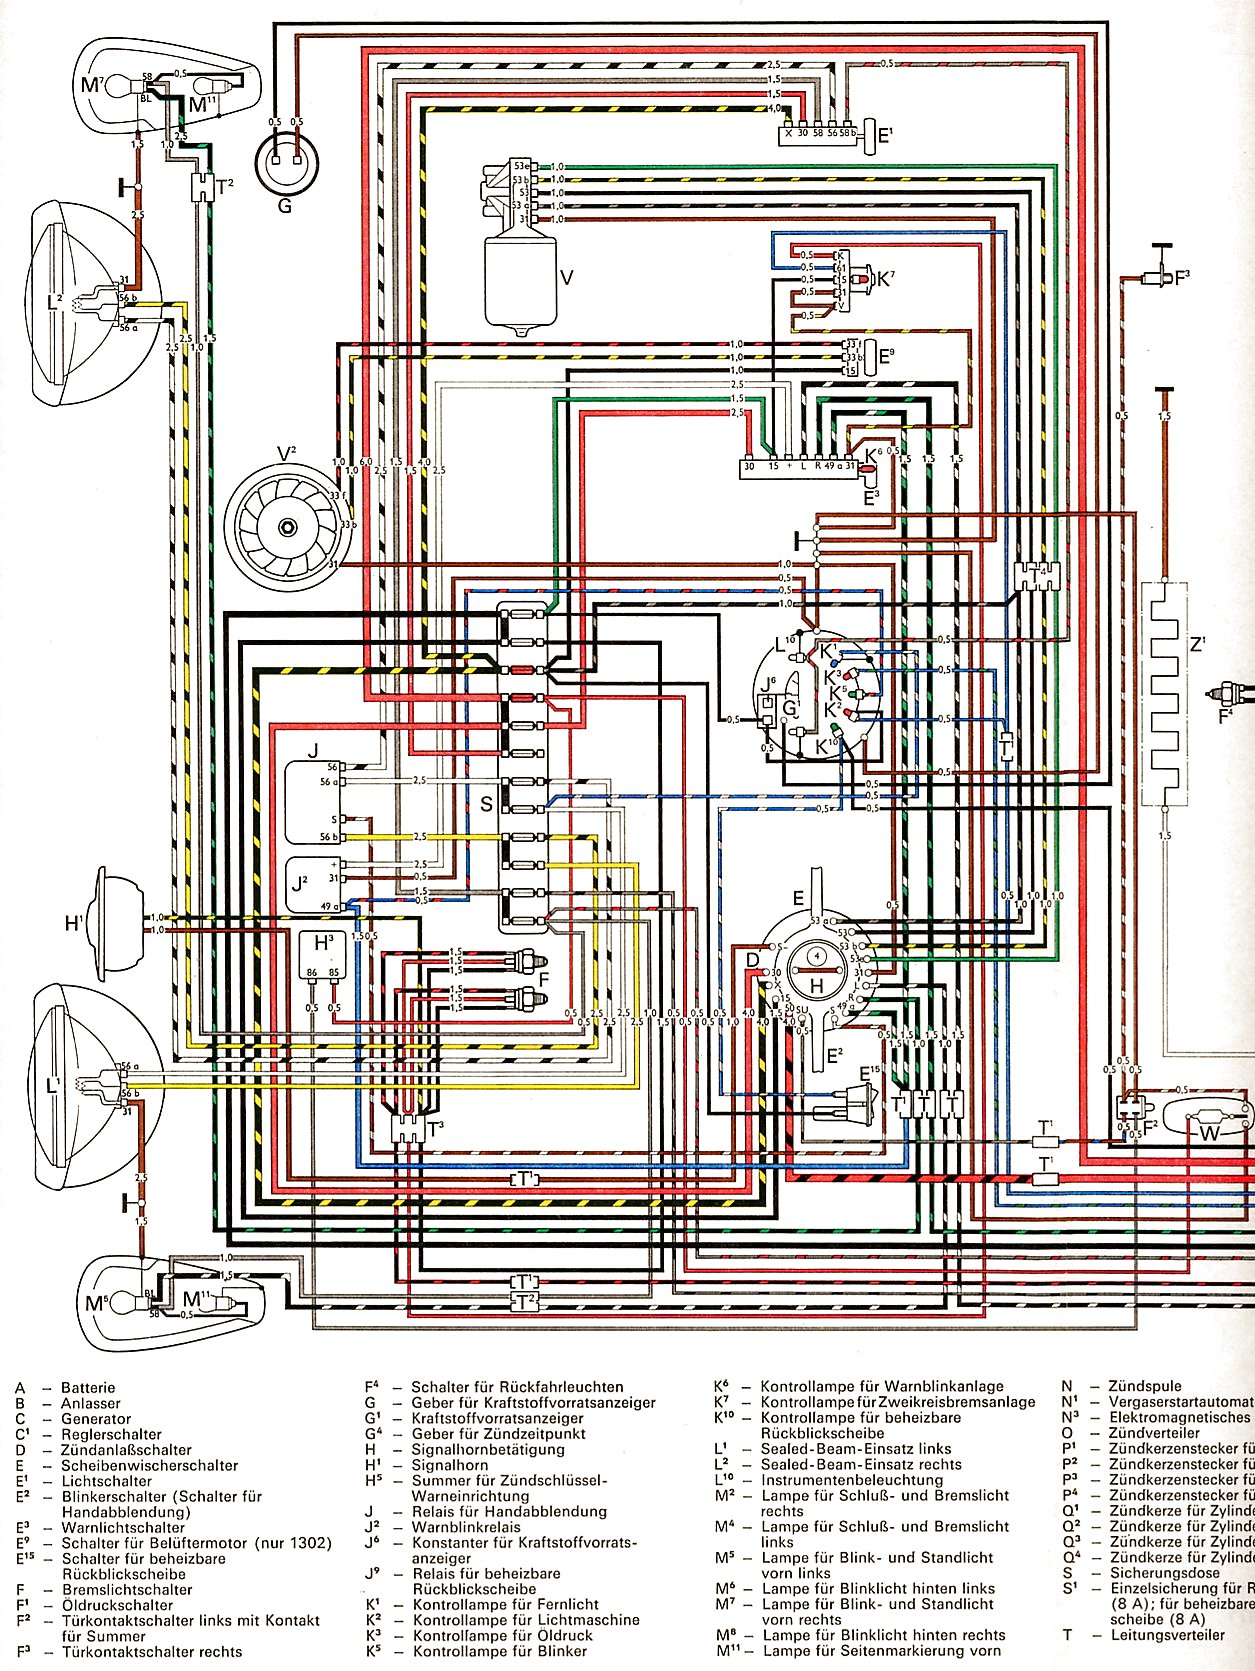 1300_and_1302_USA_from_August_1971 1 wiring diagram shoptalkforums com 1971 vw beetle wiring diagram at aneh.co